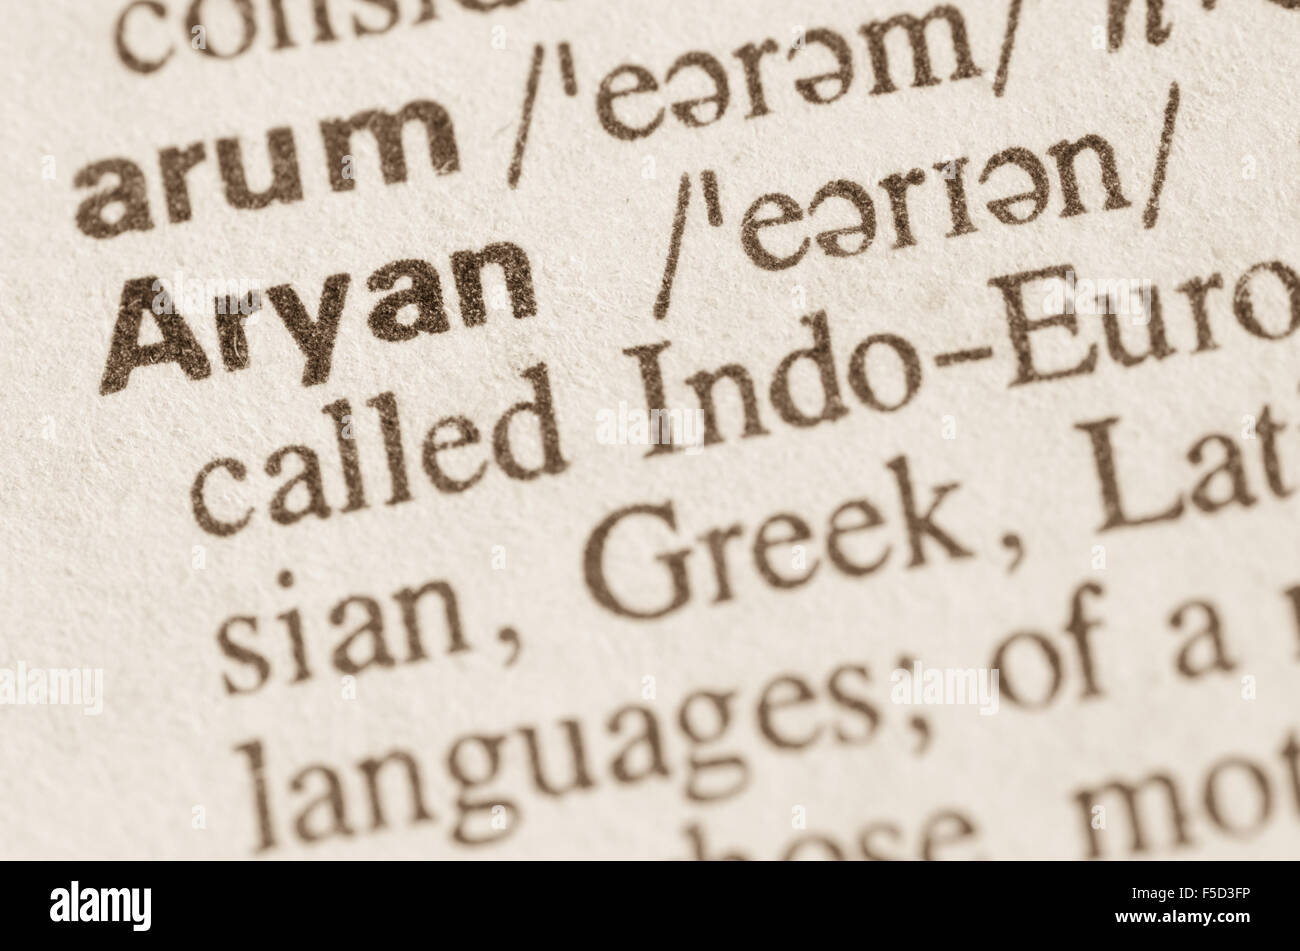 Definition Of Word Aryan In Dictionary Stock Photo Alamy Aryan is not a tamil word. https www alamy com stock photo definition of word aryan in dictionary 89413290 html